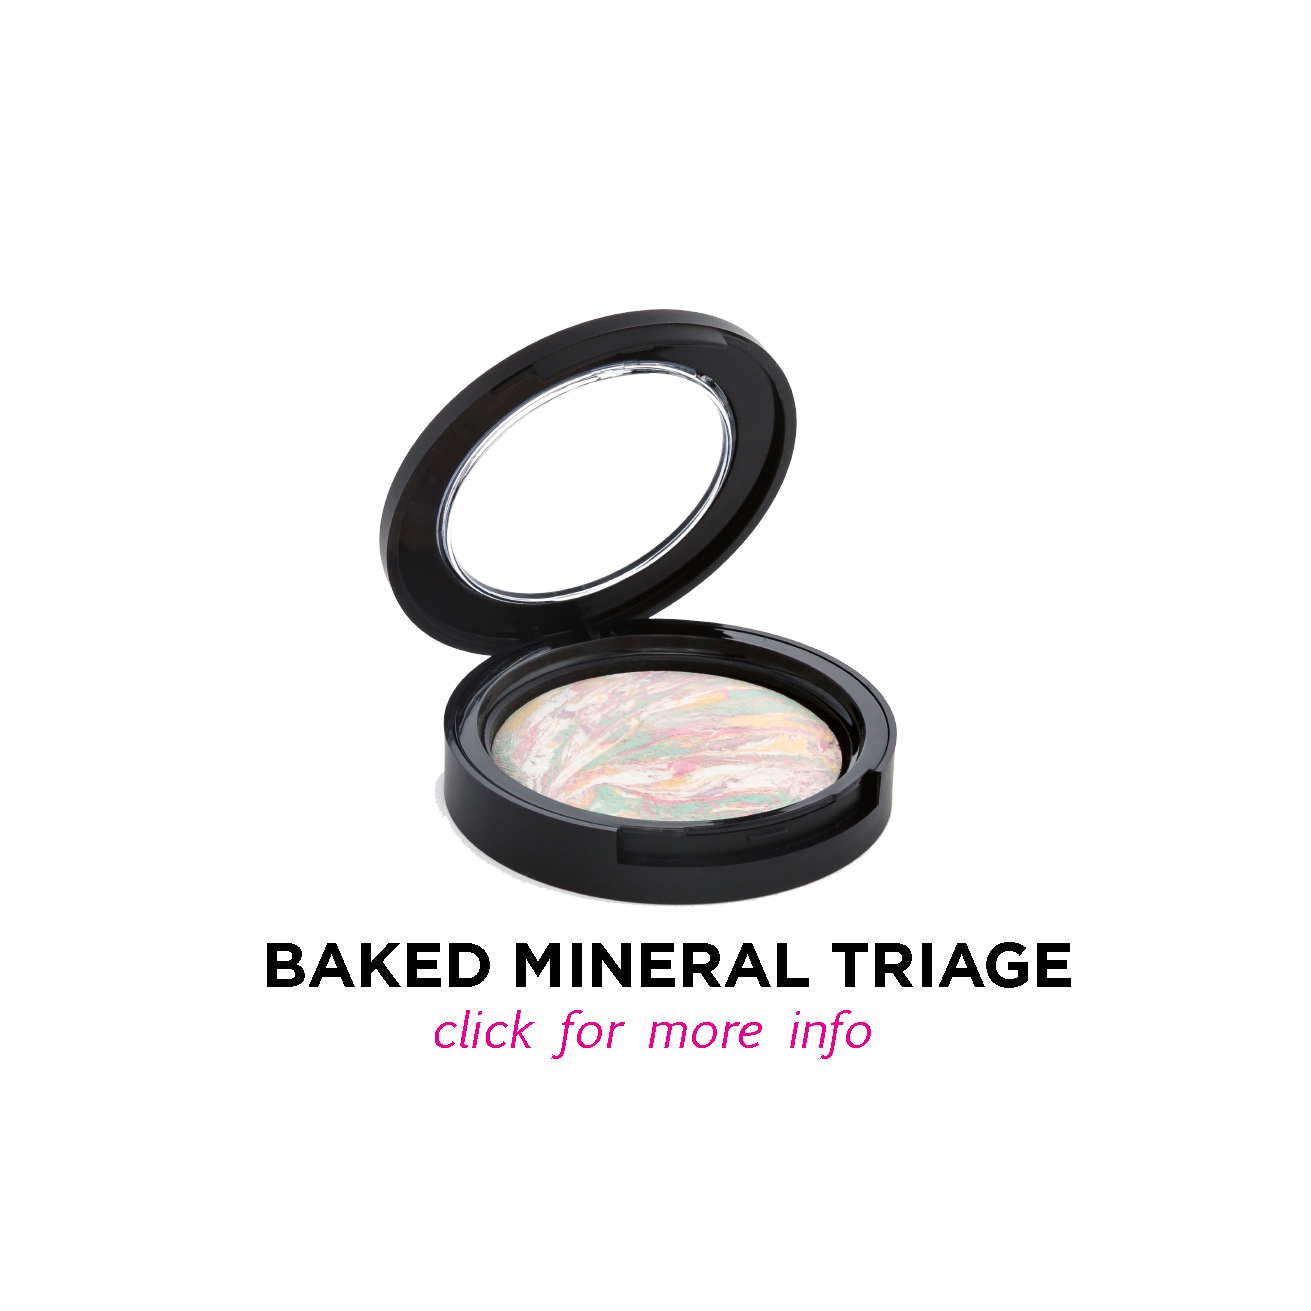 Baked Mineral Triage